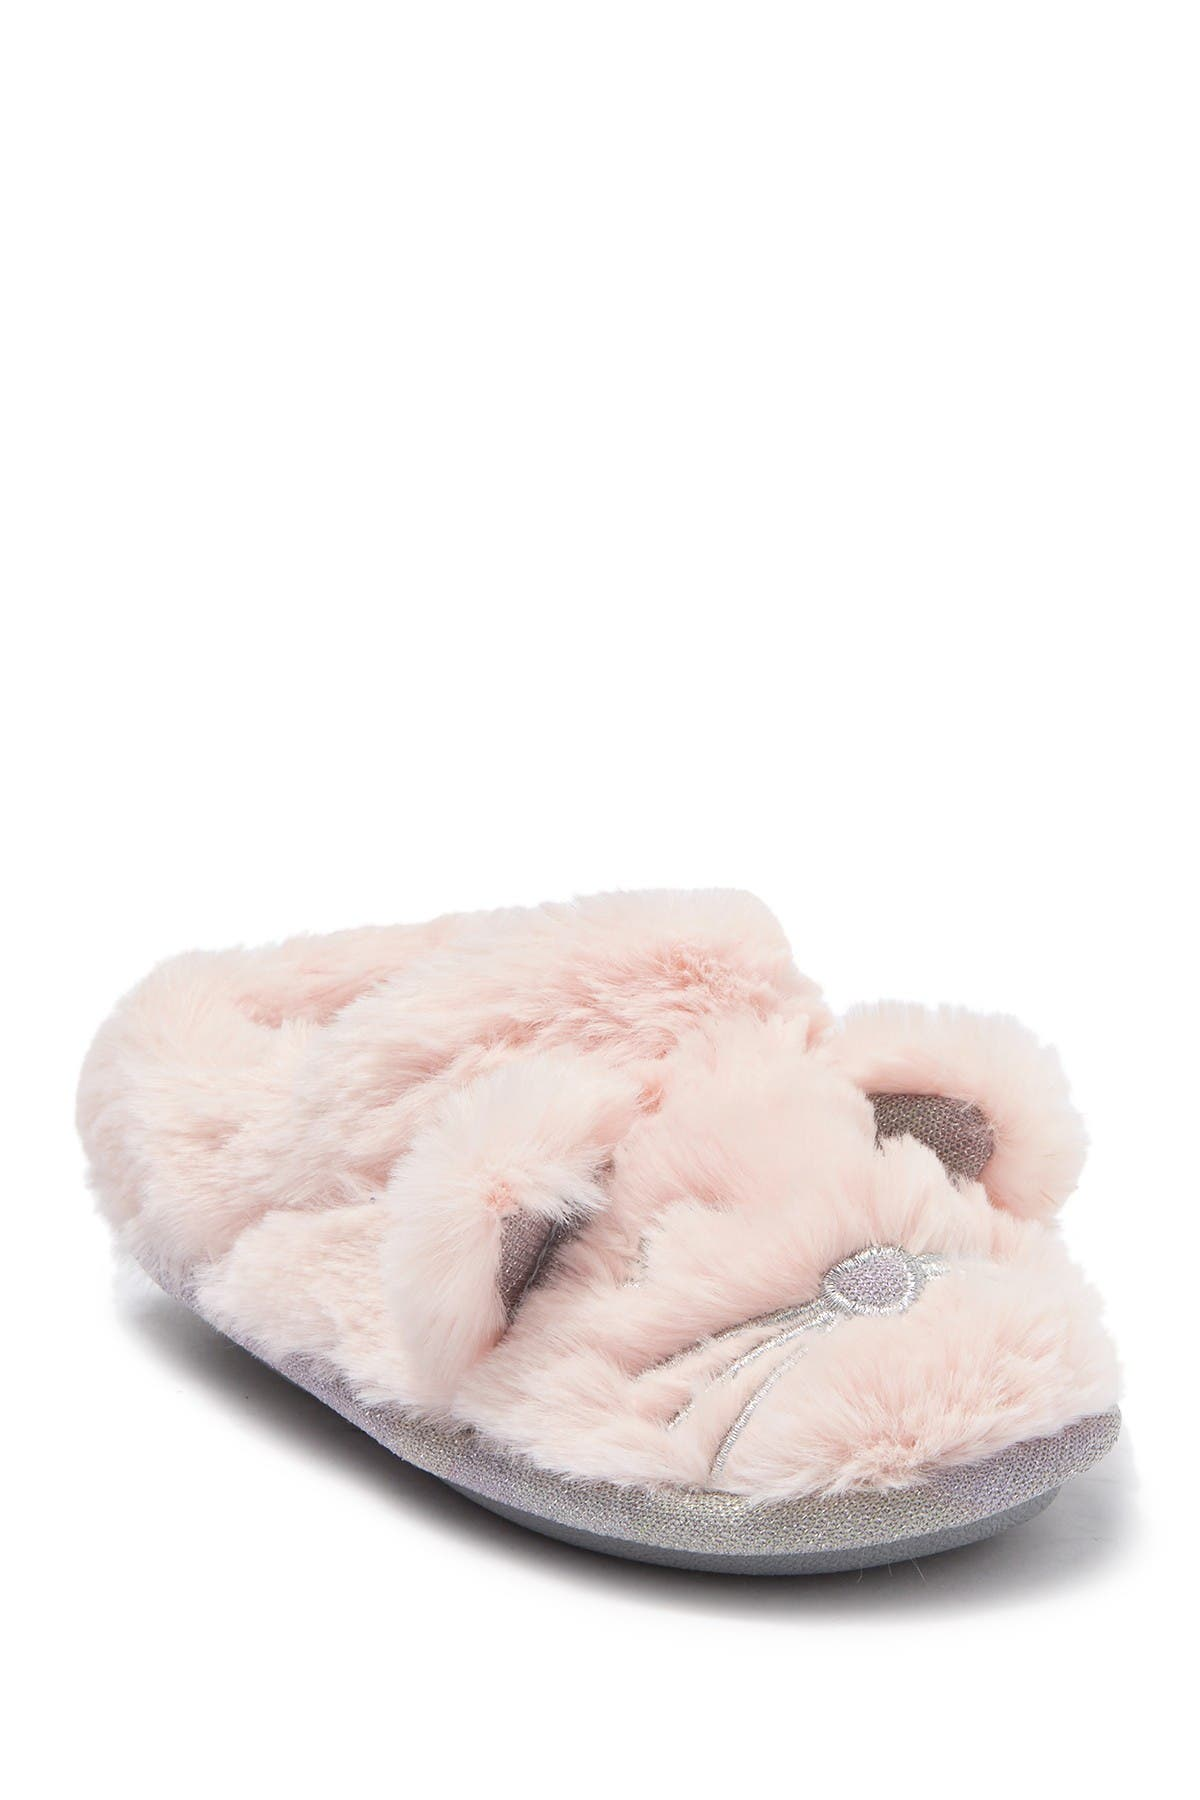 Image of Harper Canyon Faux Fur Cat Slipper